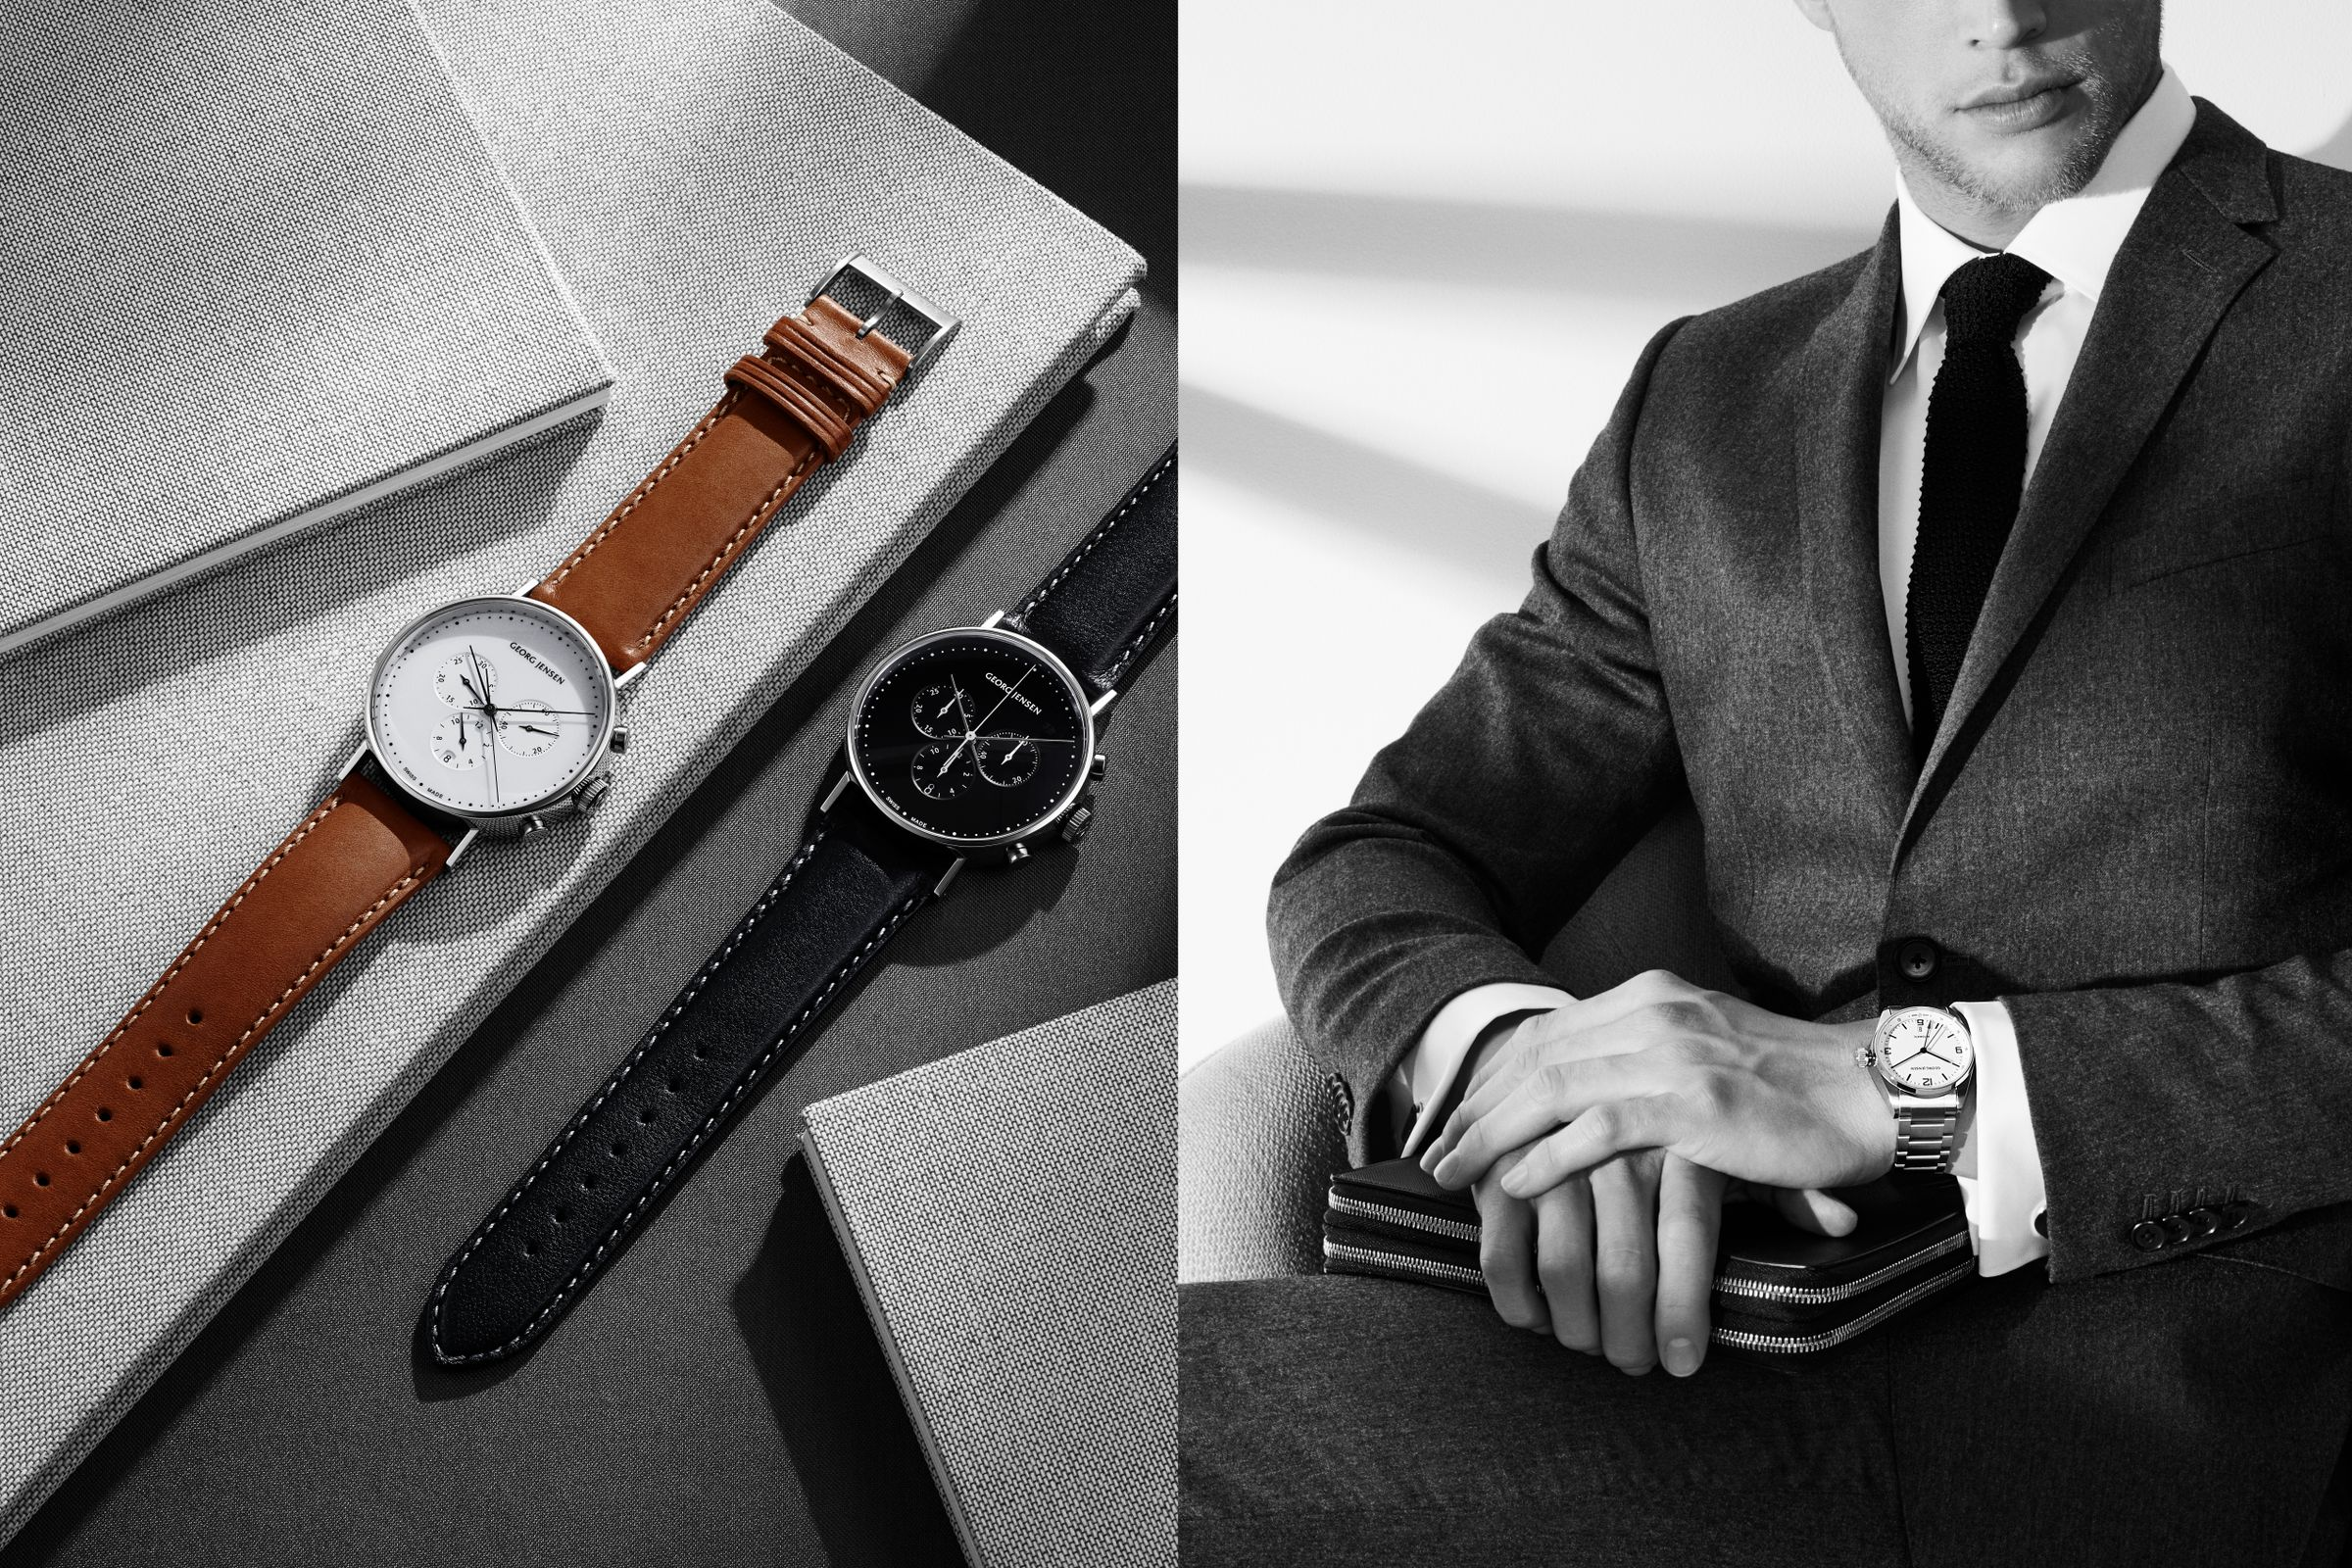 Georg Jensen watches photographed by Hasse Nielsen and Toby McFarlan Pond